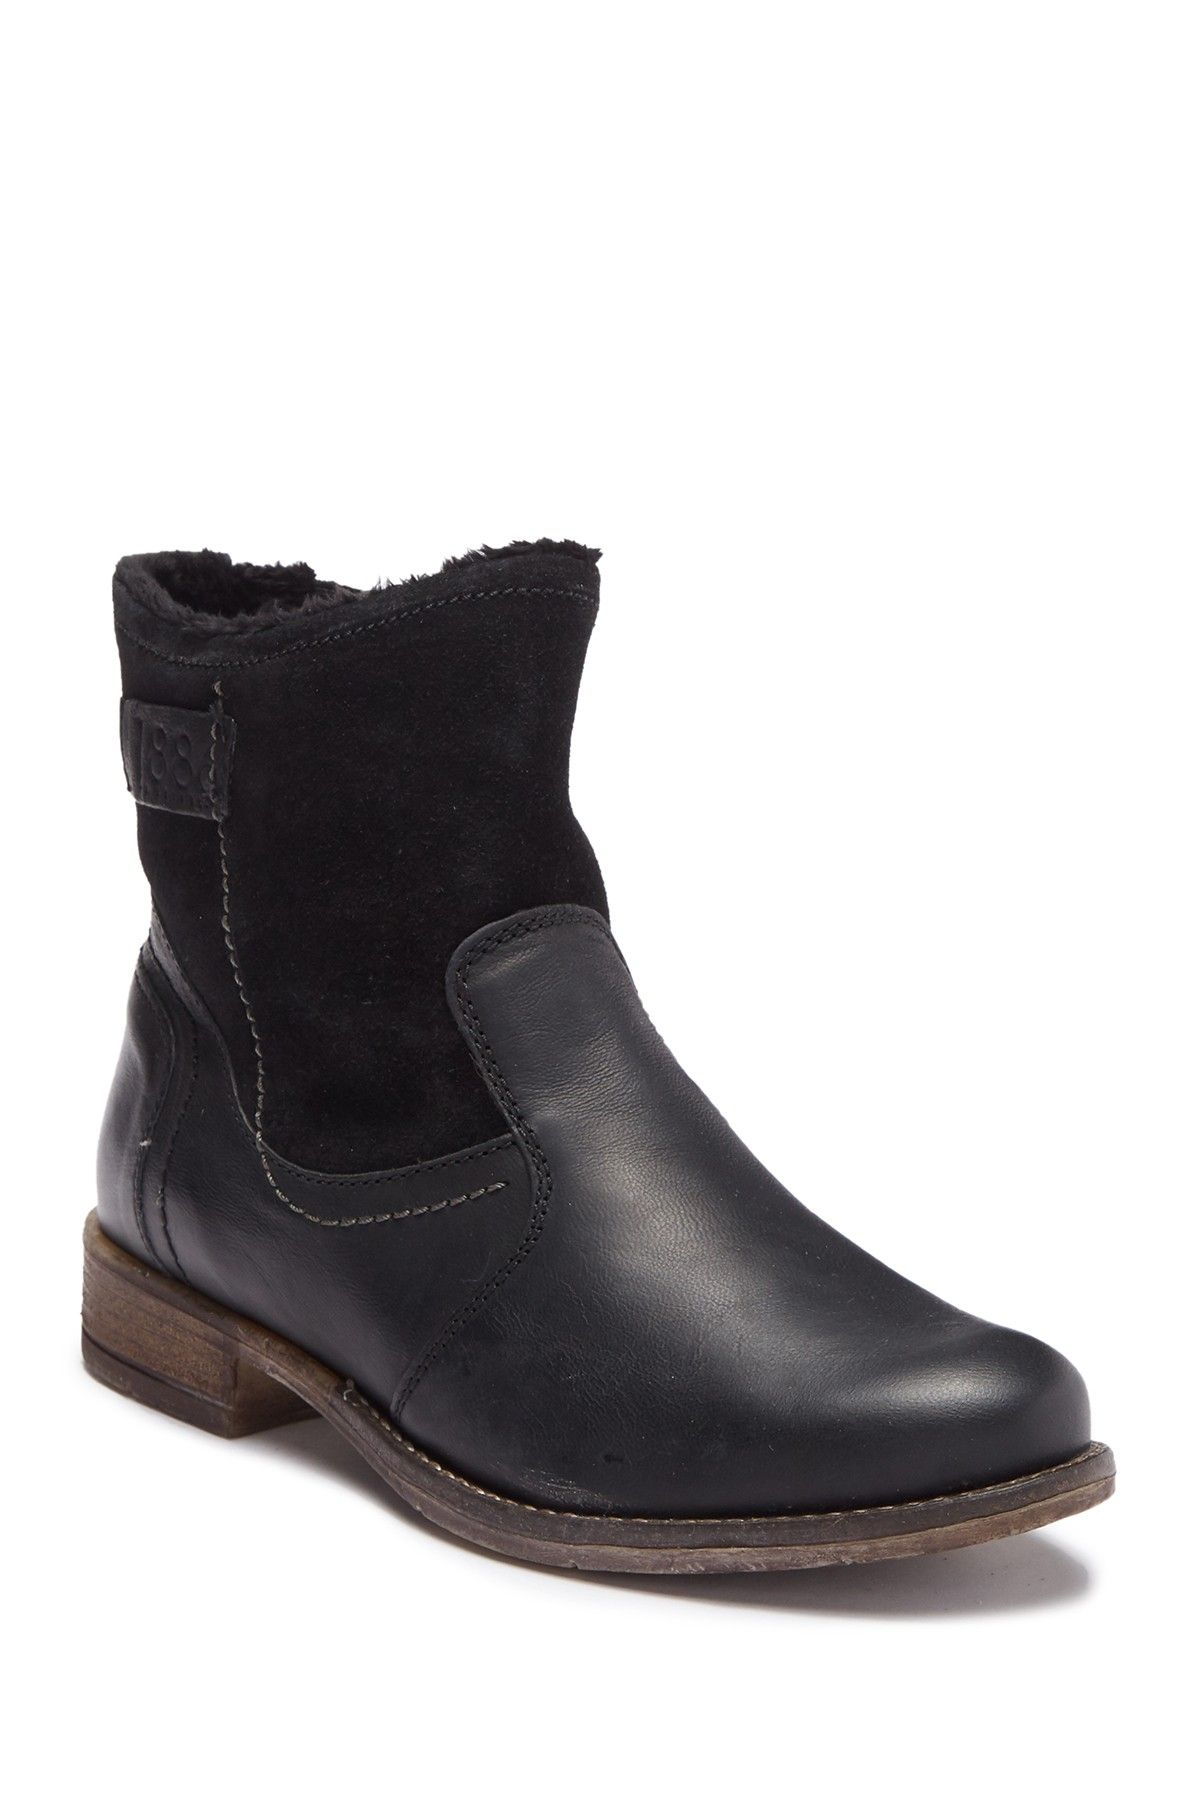 bd63d3c92df Sienna Leather Faux Fur Lined Boot by Josef Seibel on  nordstrom rack